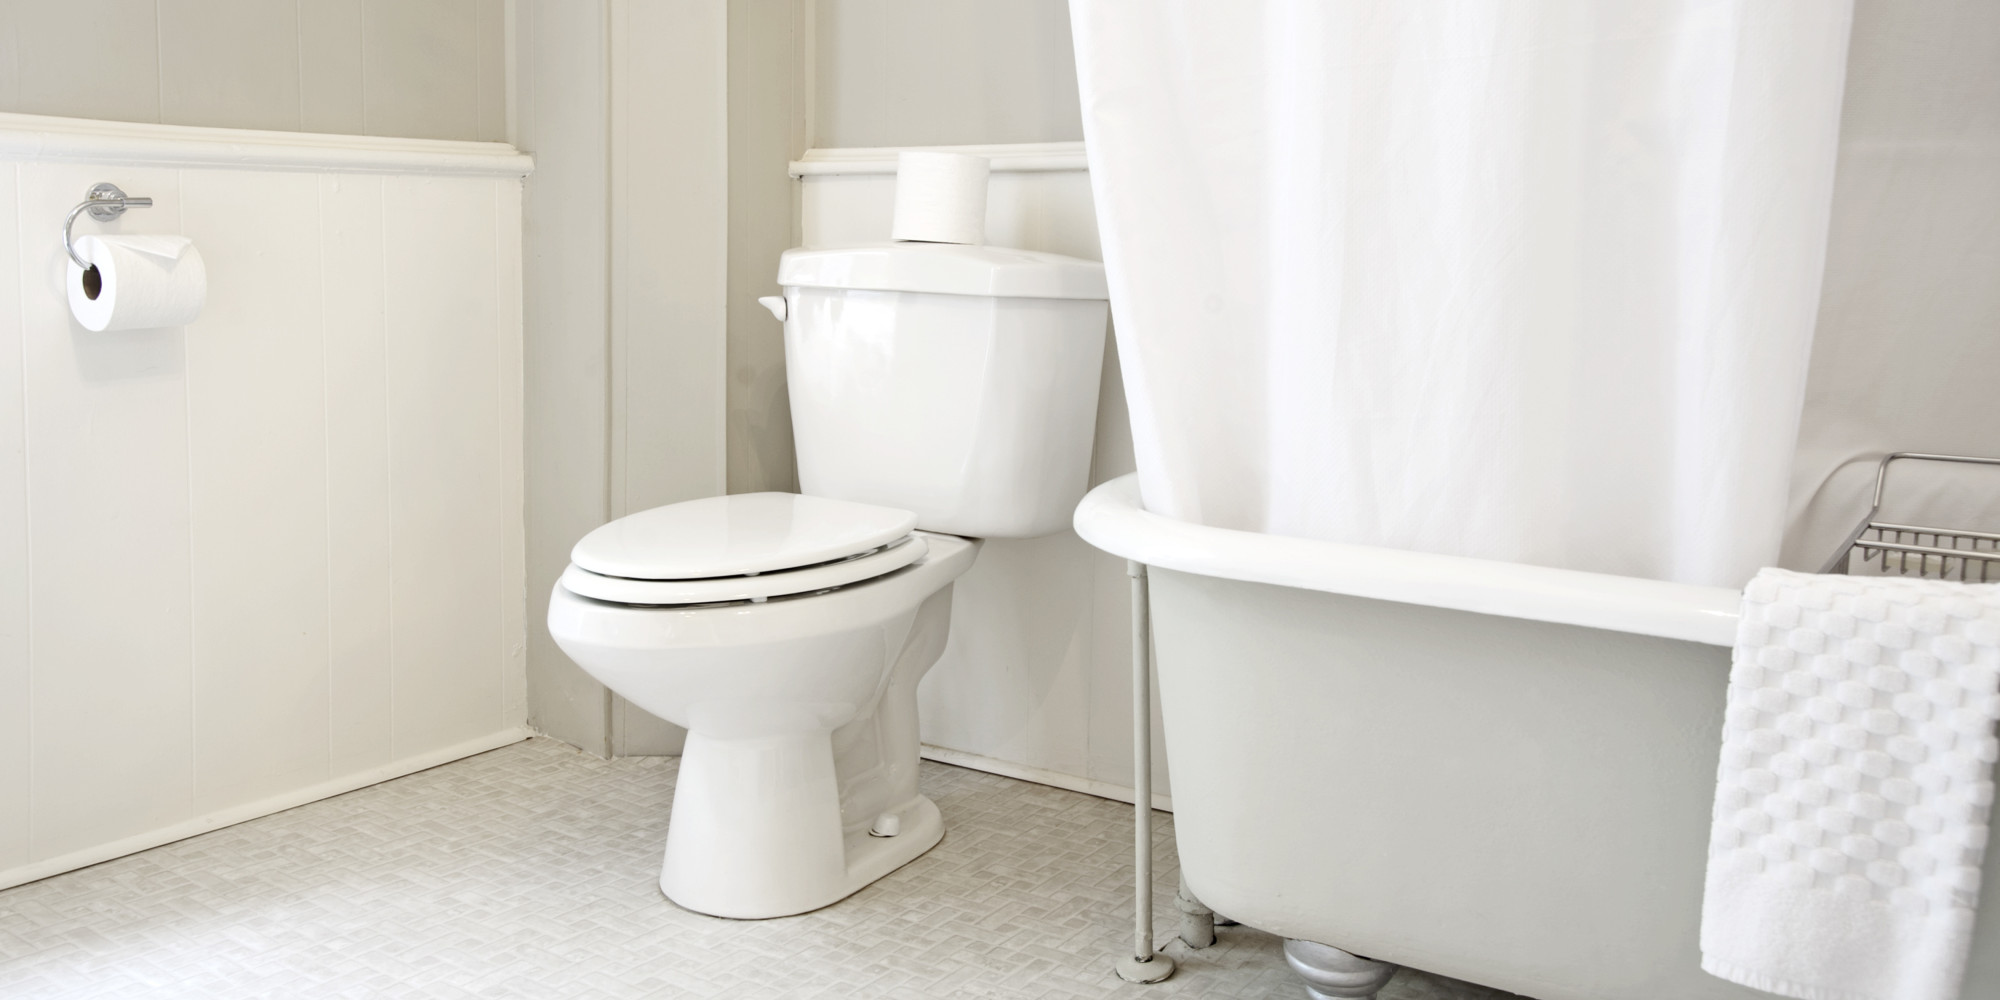 How To Unclog A Toilet Without A Plunger | HuffPost